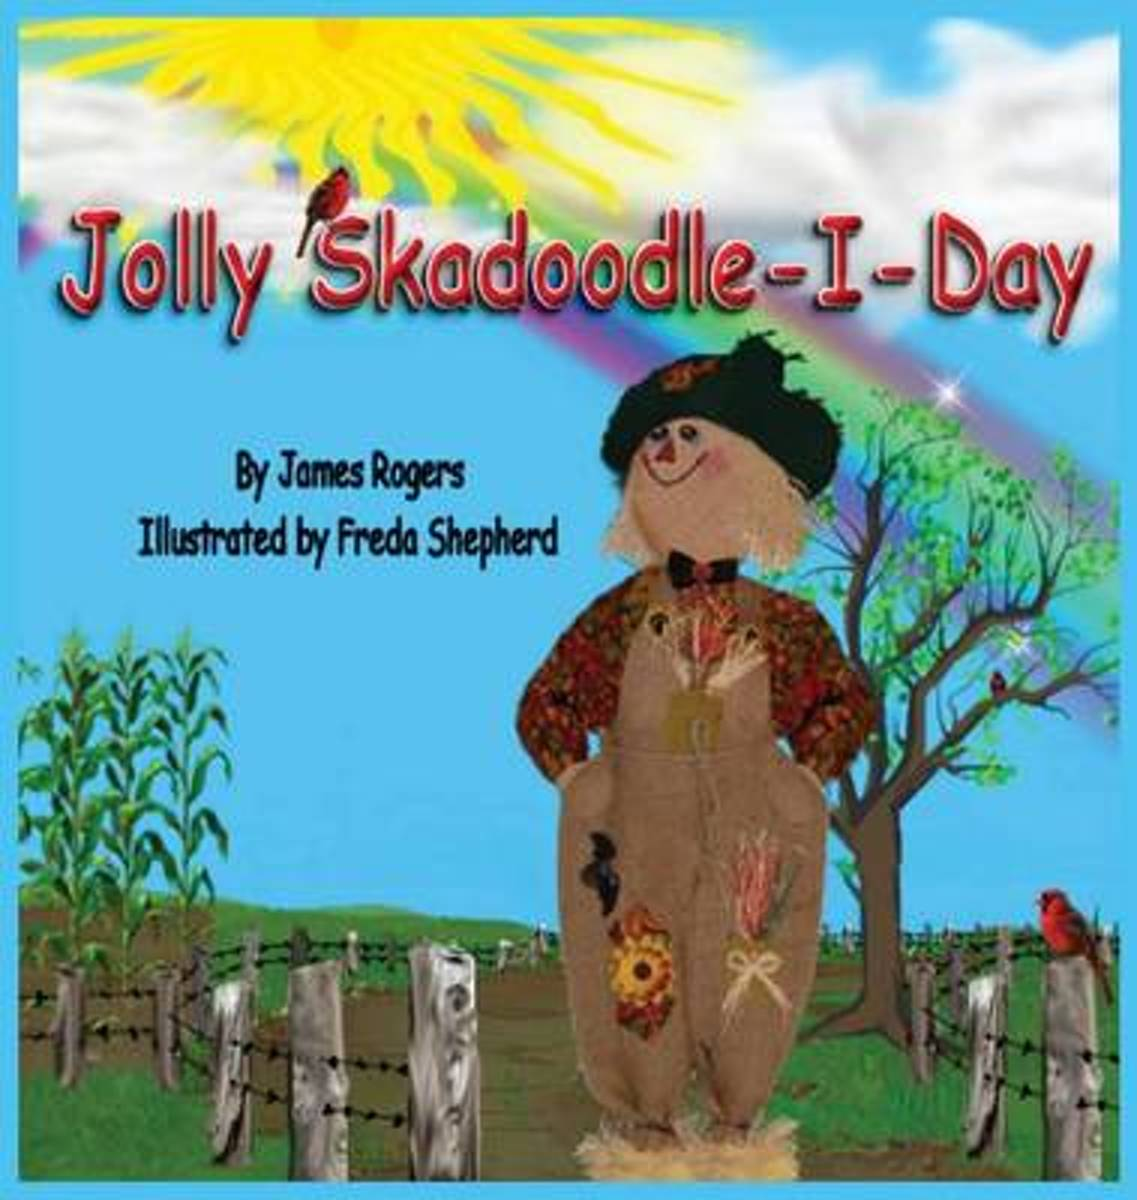 Jolly Skadoodle-I-Day